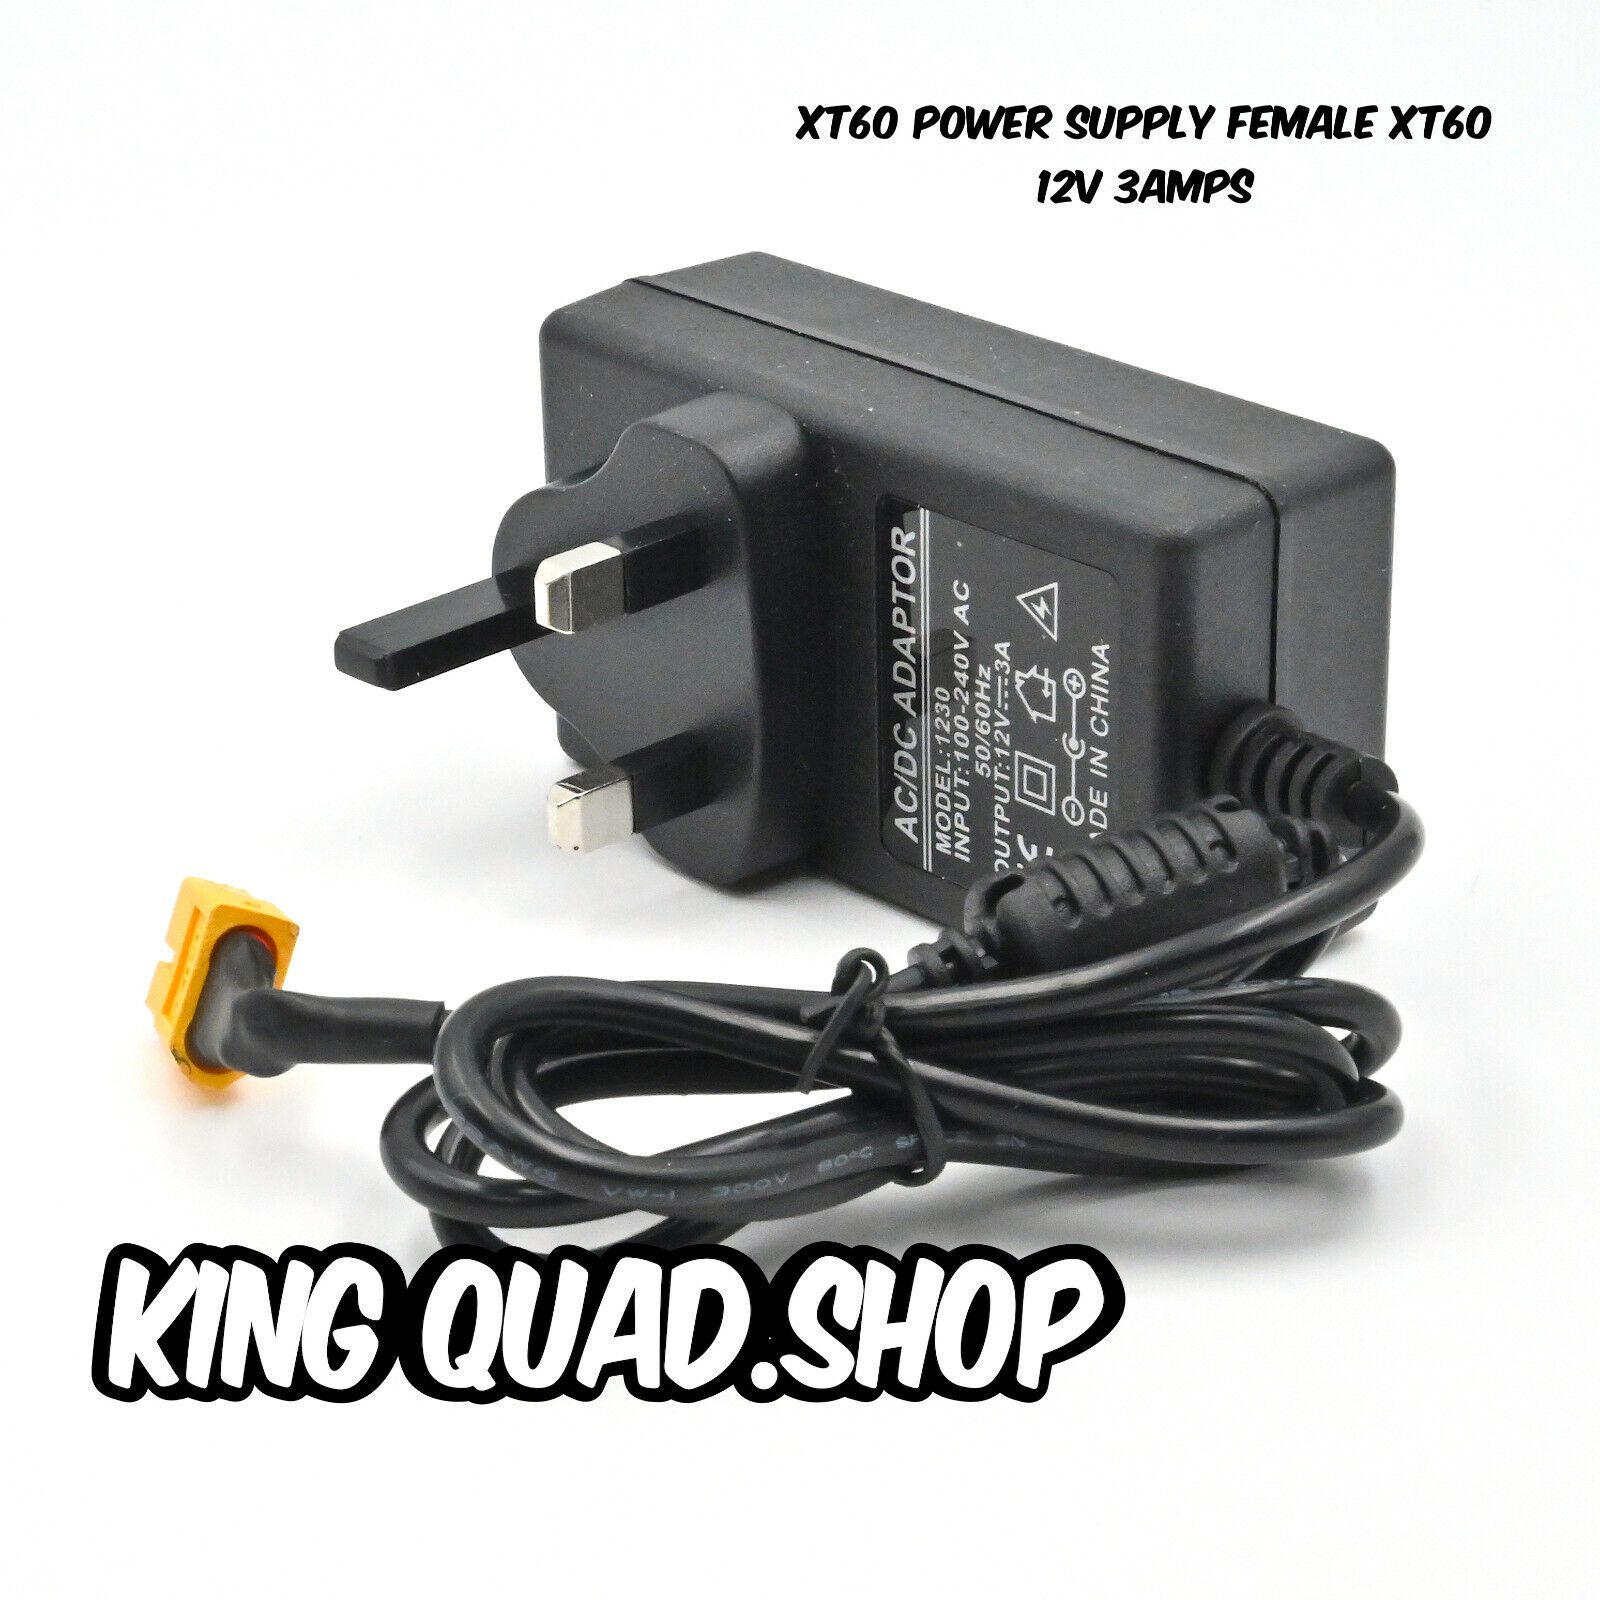 XT60 Power Supply for ISDT Charger with UK Plug (Female XT60)